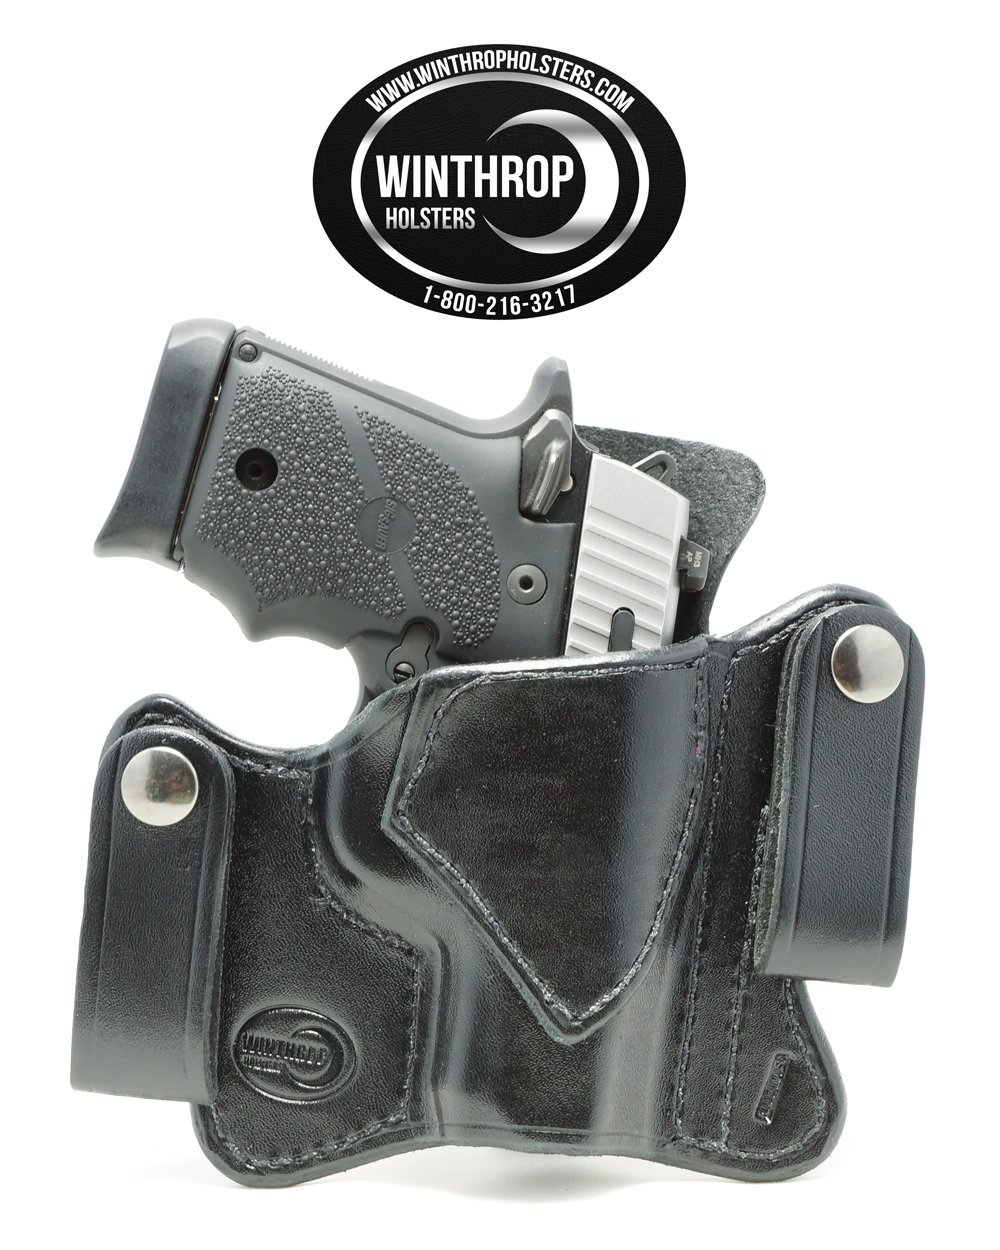 Our Top Pick for 2018: IWB Holsters, The Best Inside Waist Band Holster, Sig Sauer P938 7